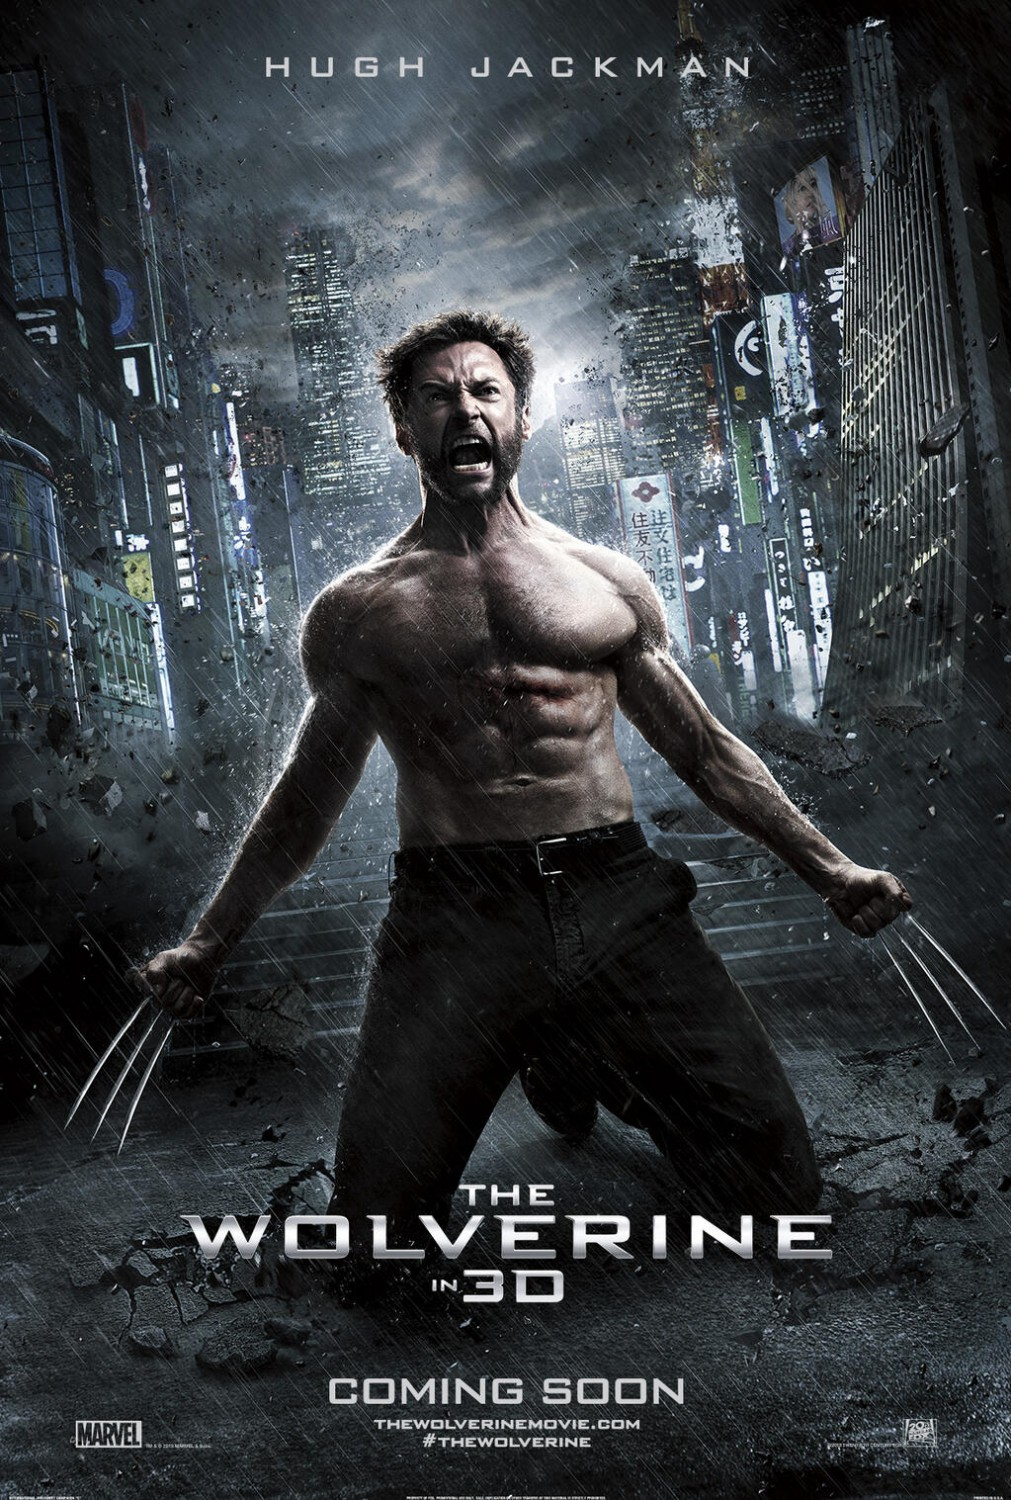 THE WOLVERINE International One Sheet #1